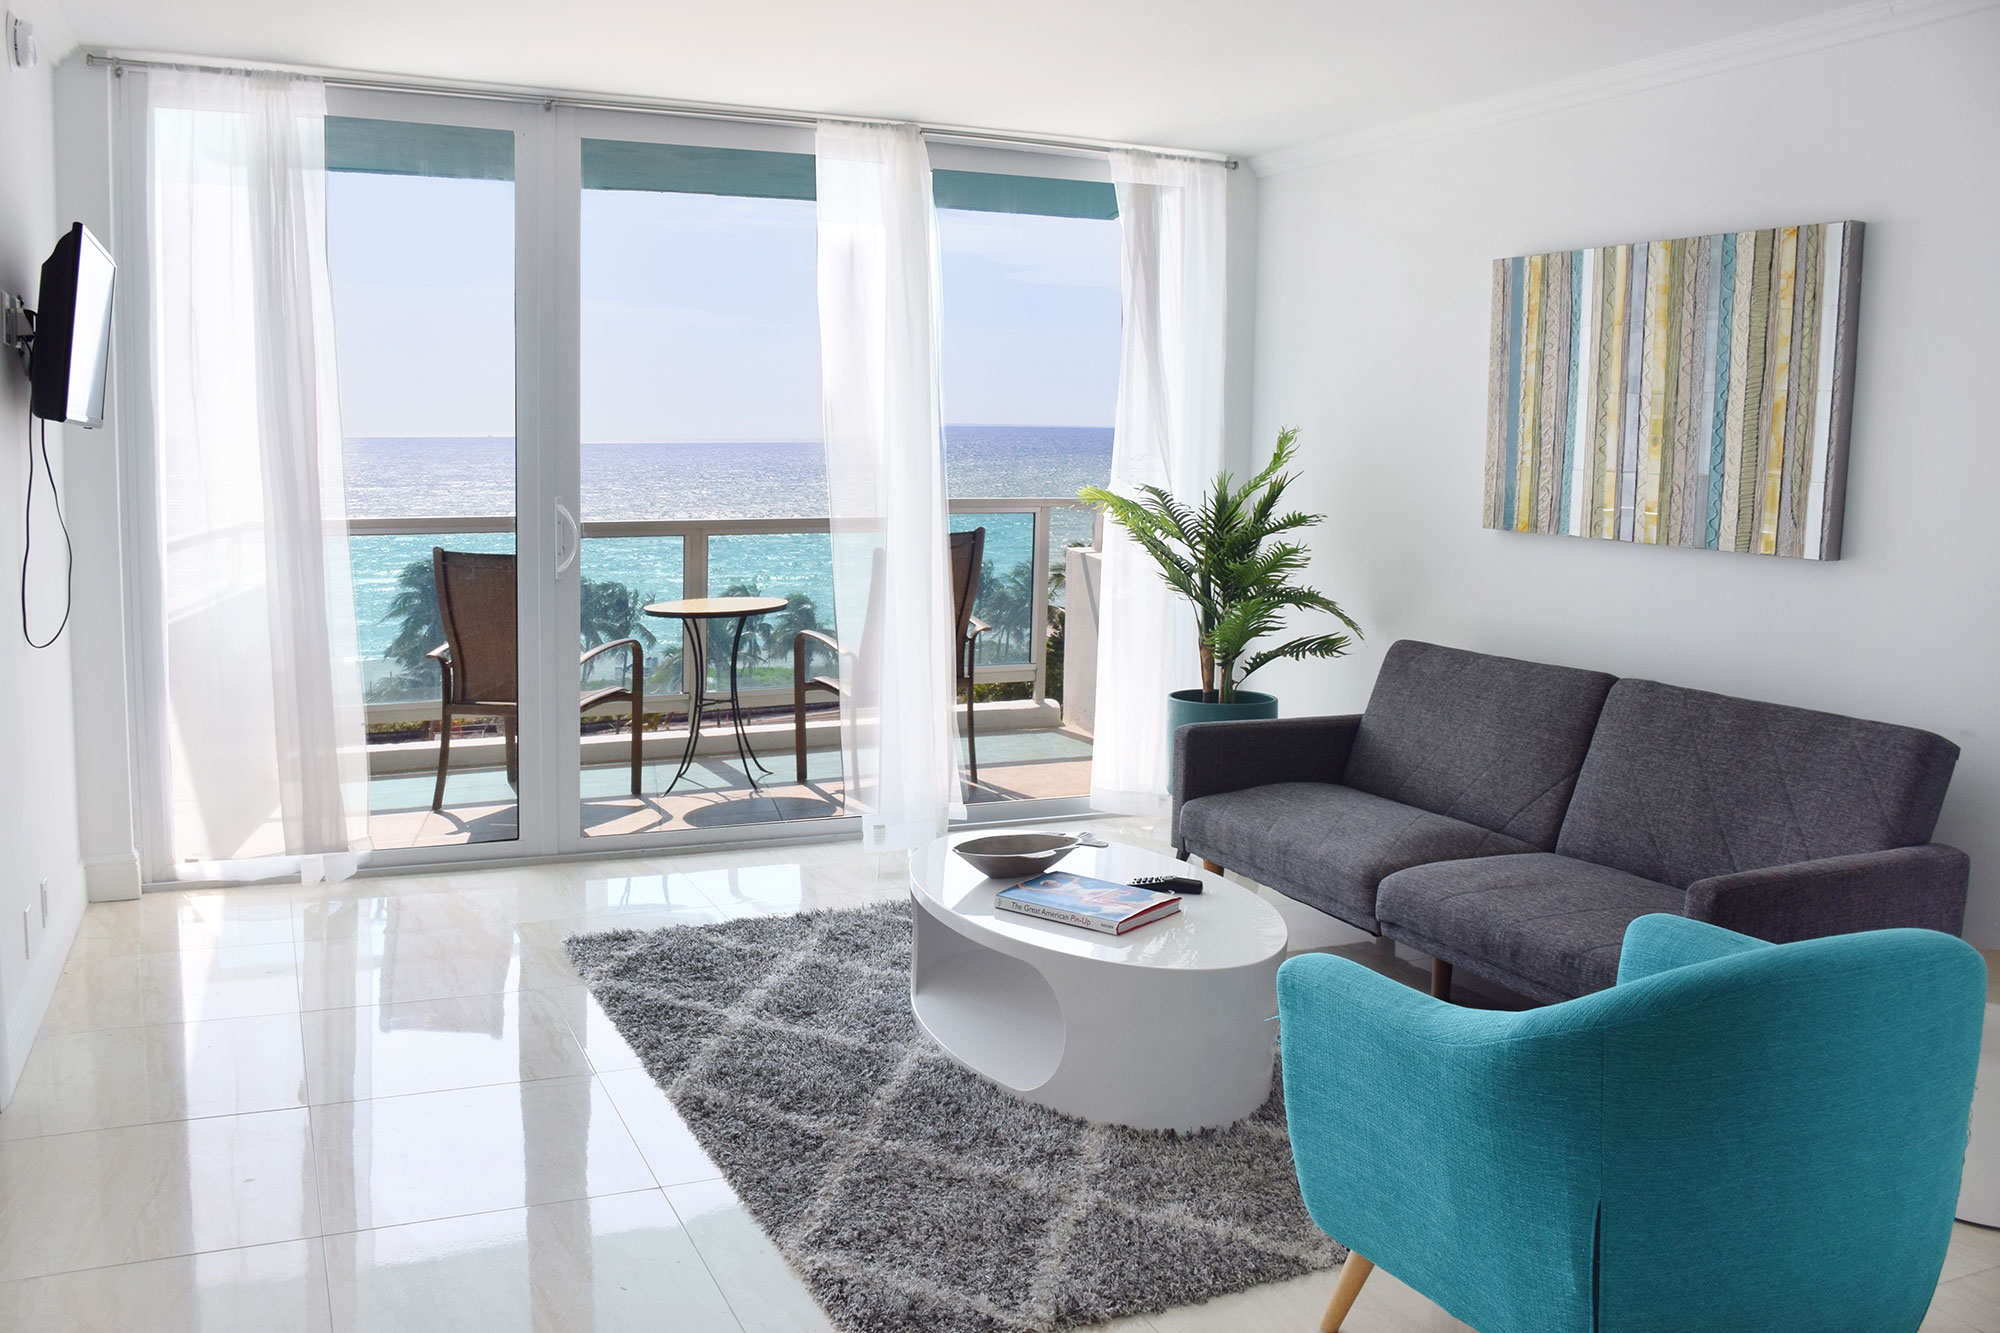 Ocean View Living Room at Seacoast Suites